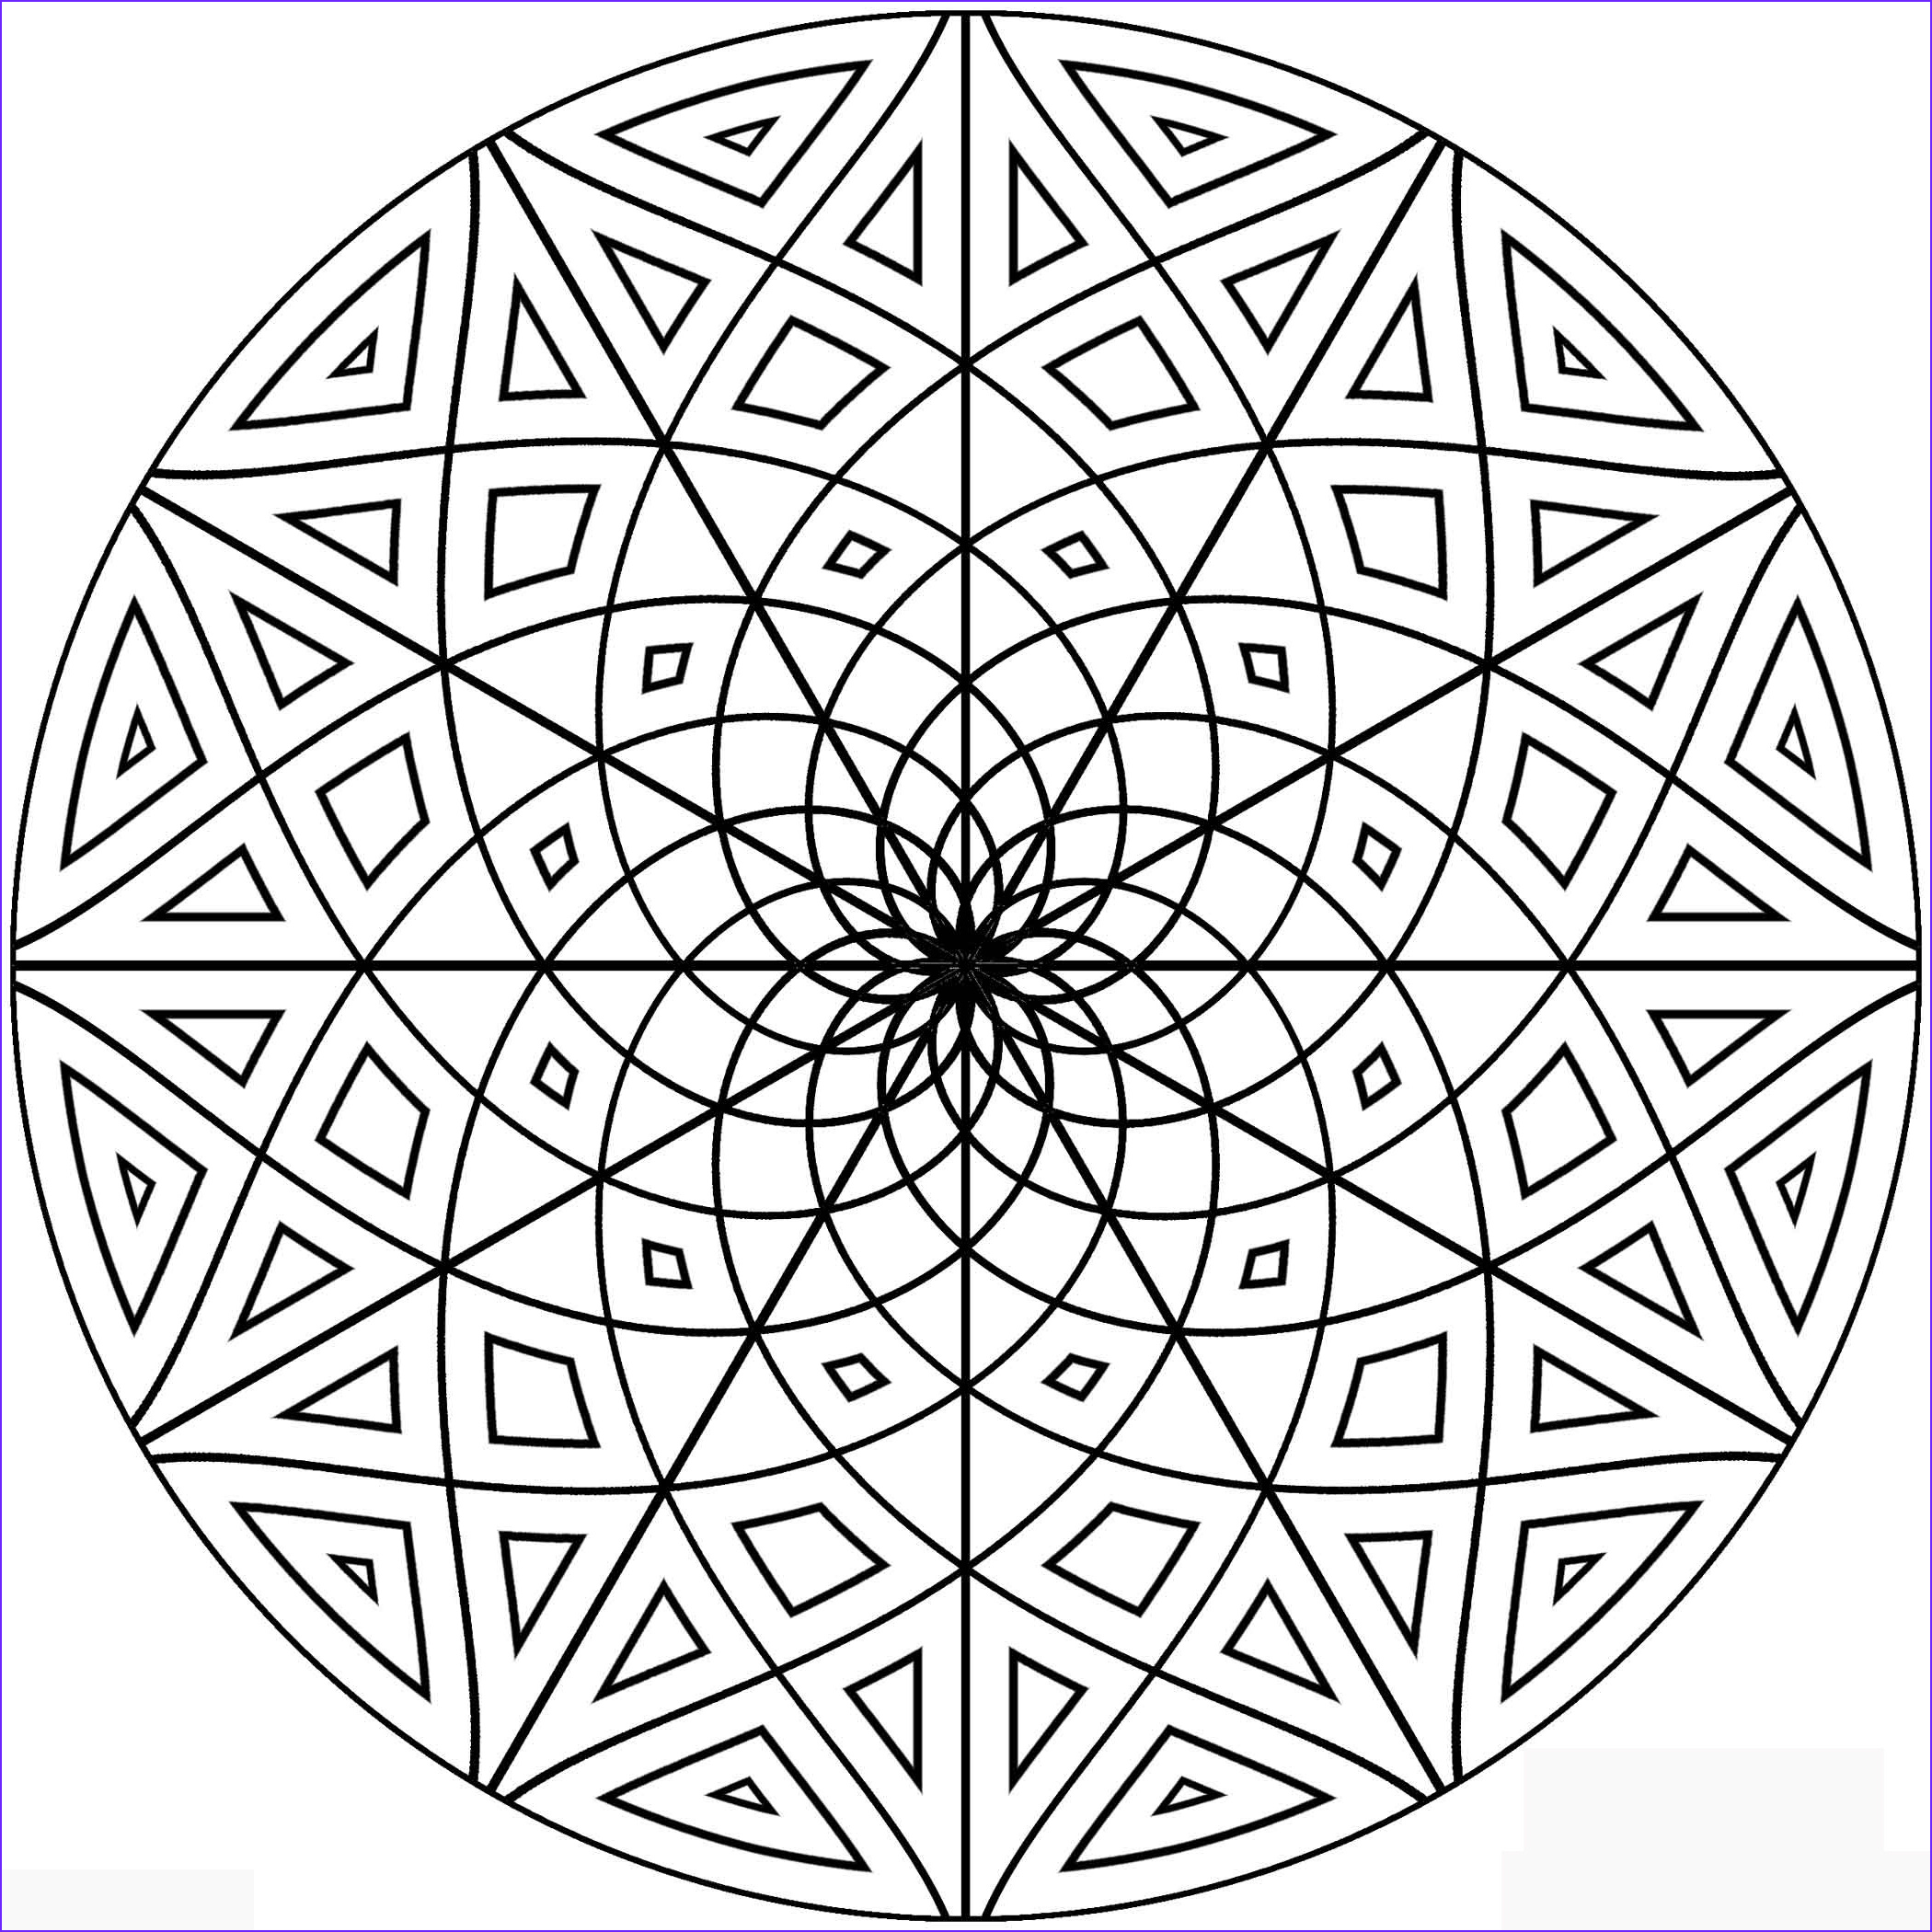 Coloring Pages Designs Cool Photos Free Printable Geometric Coloring Pages for Adults